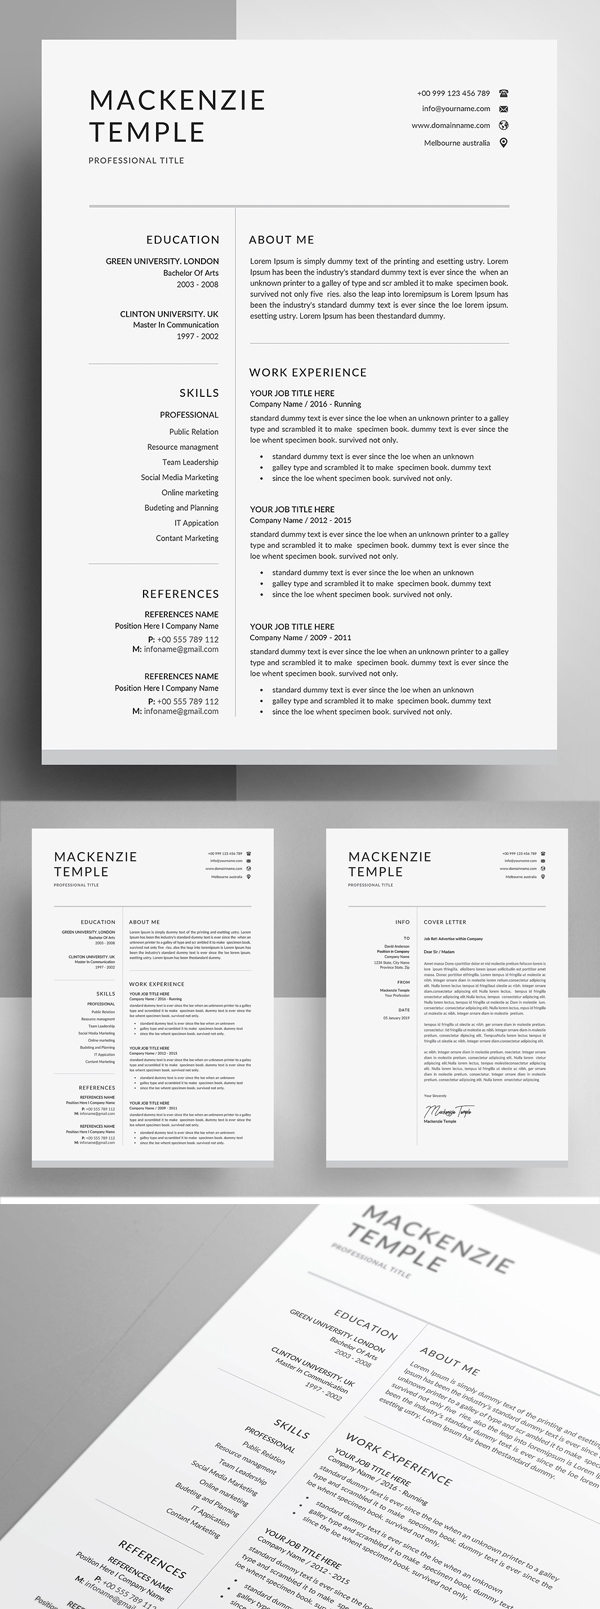 Resume Template Cover Letter Examples Of 25 Best Resume Templates for 2020 Graphics Design